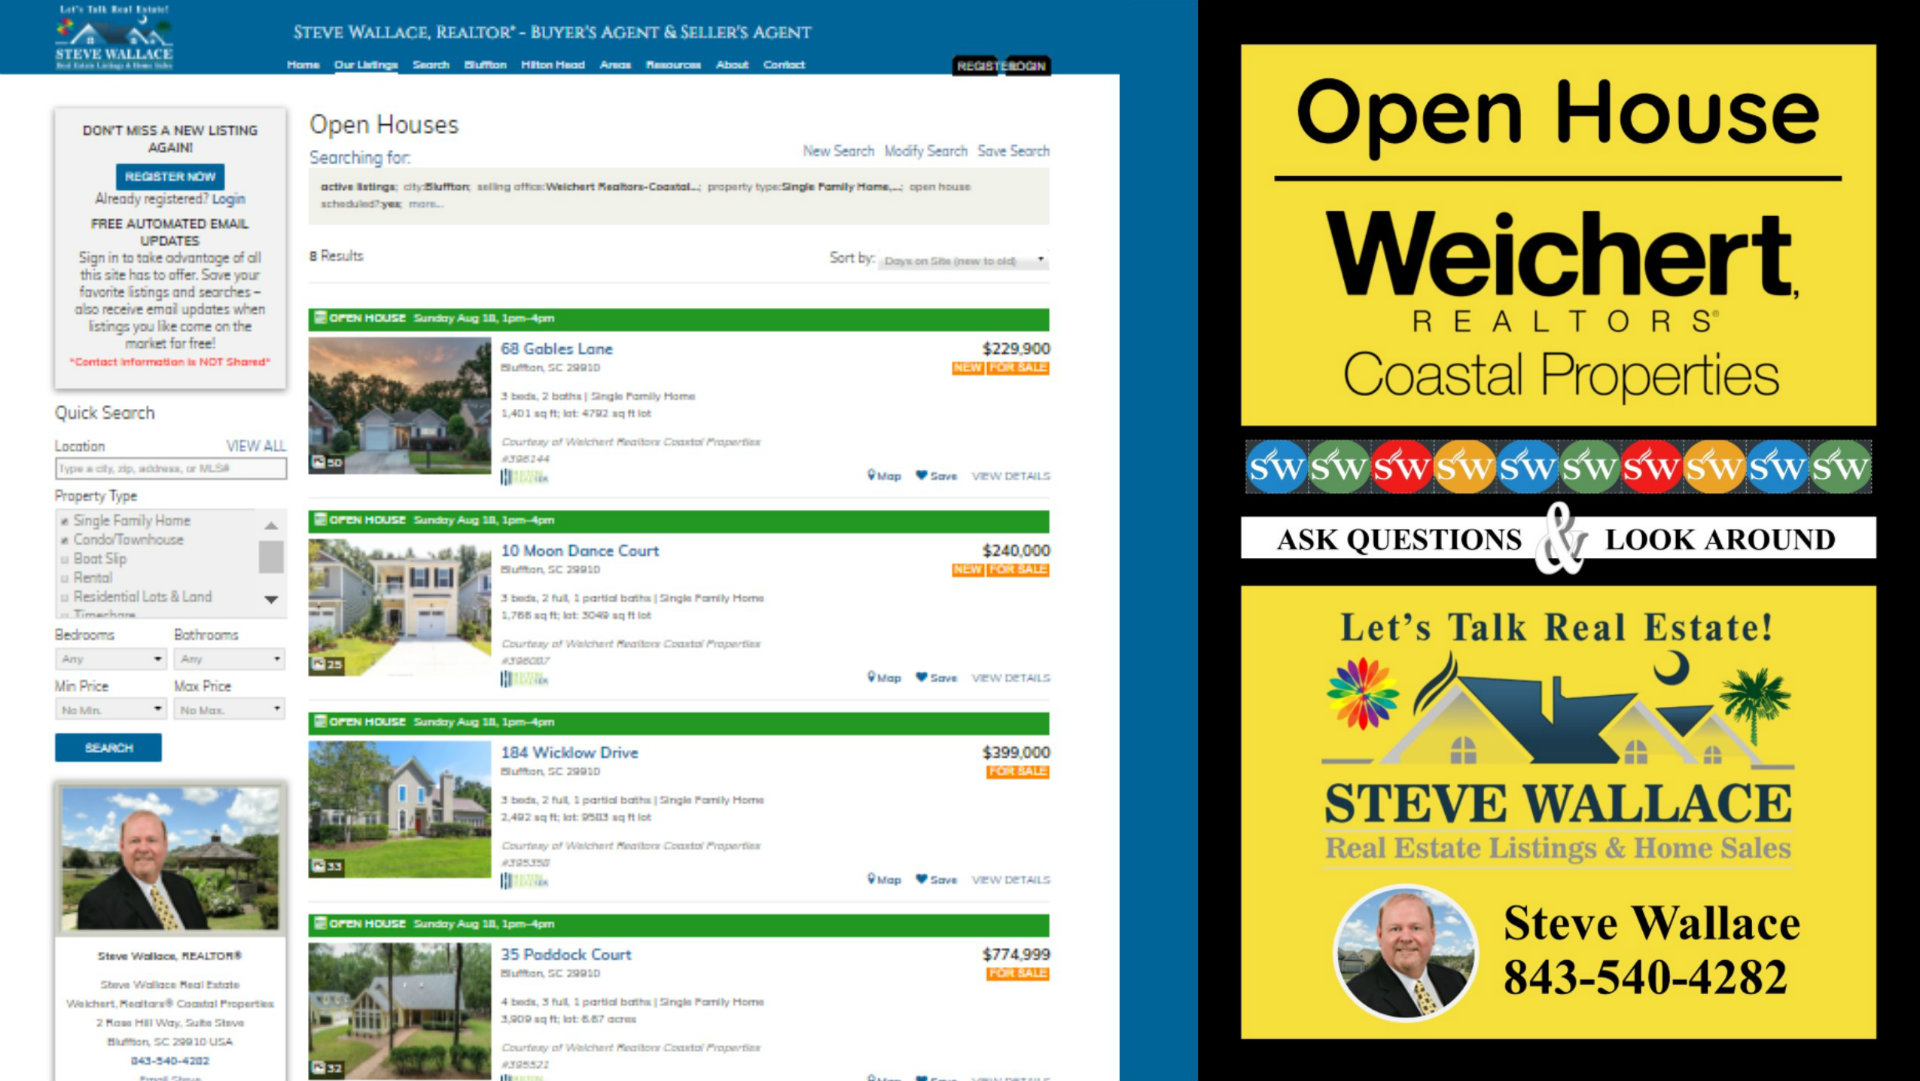 featured, open houses, Greater Bluffton, SC, real estate, listings, homes for sale